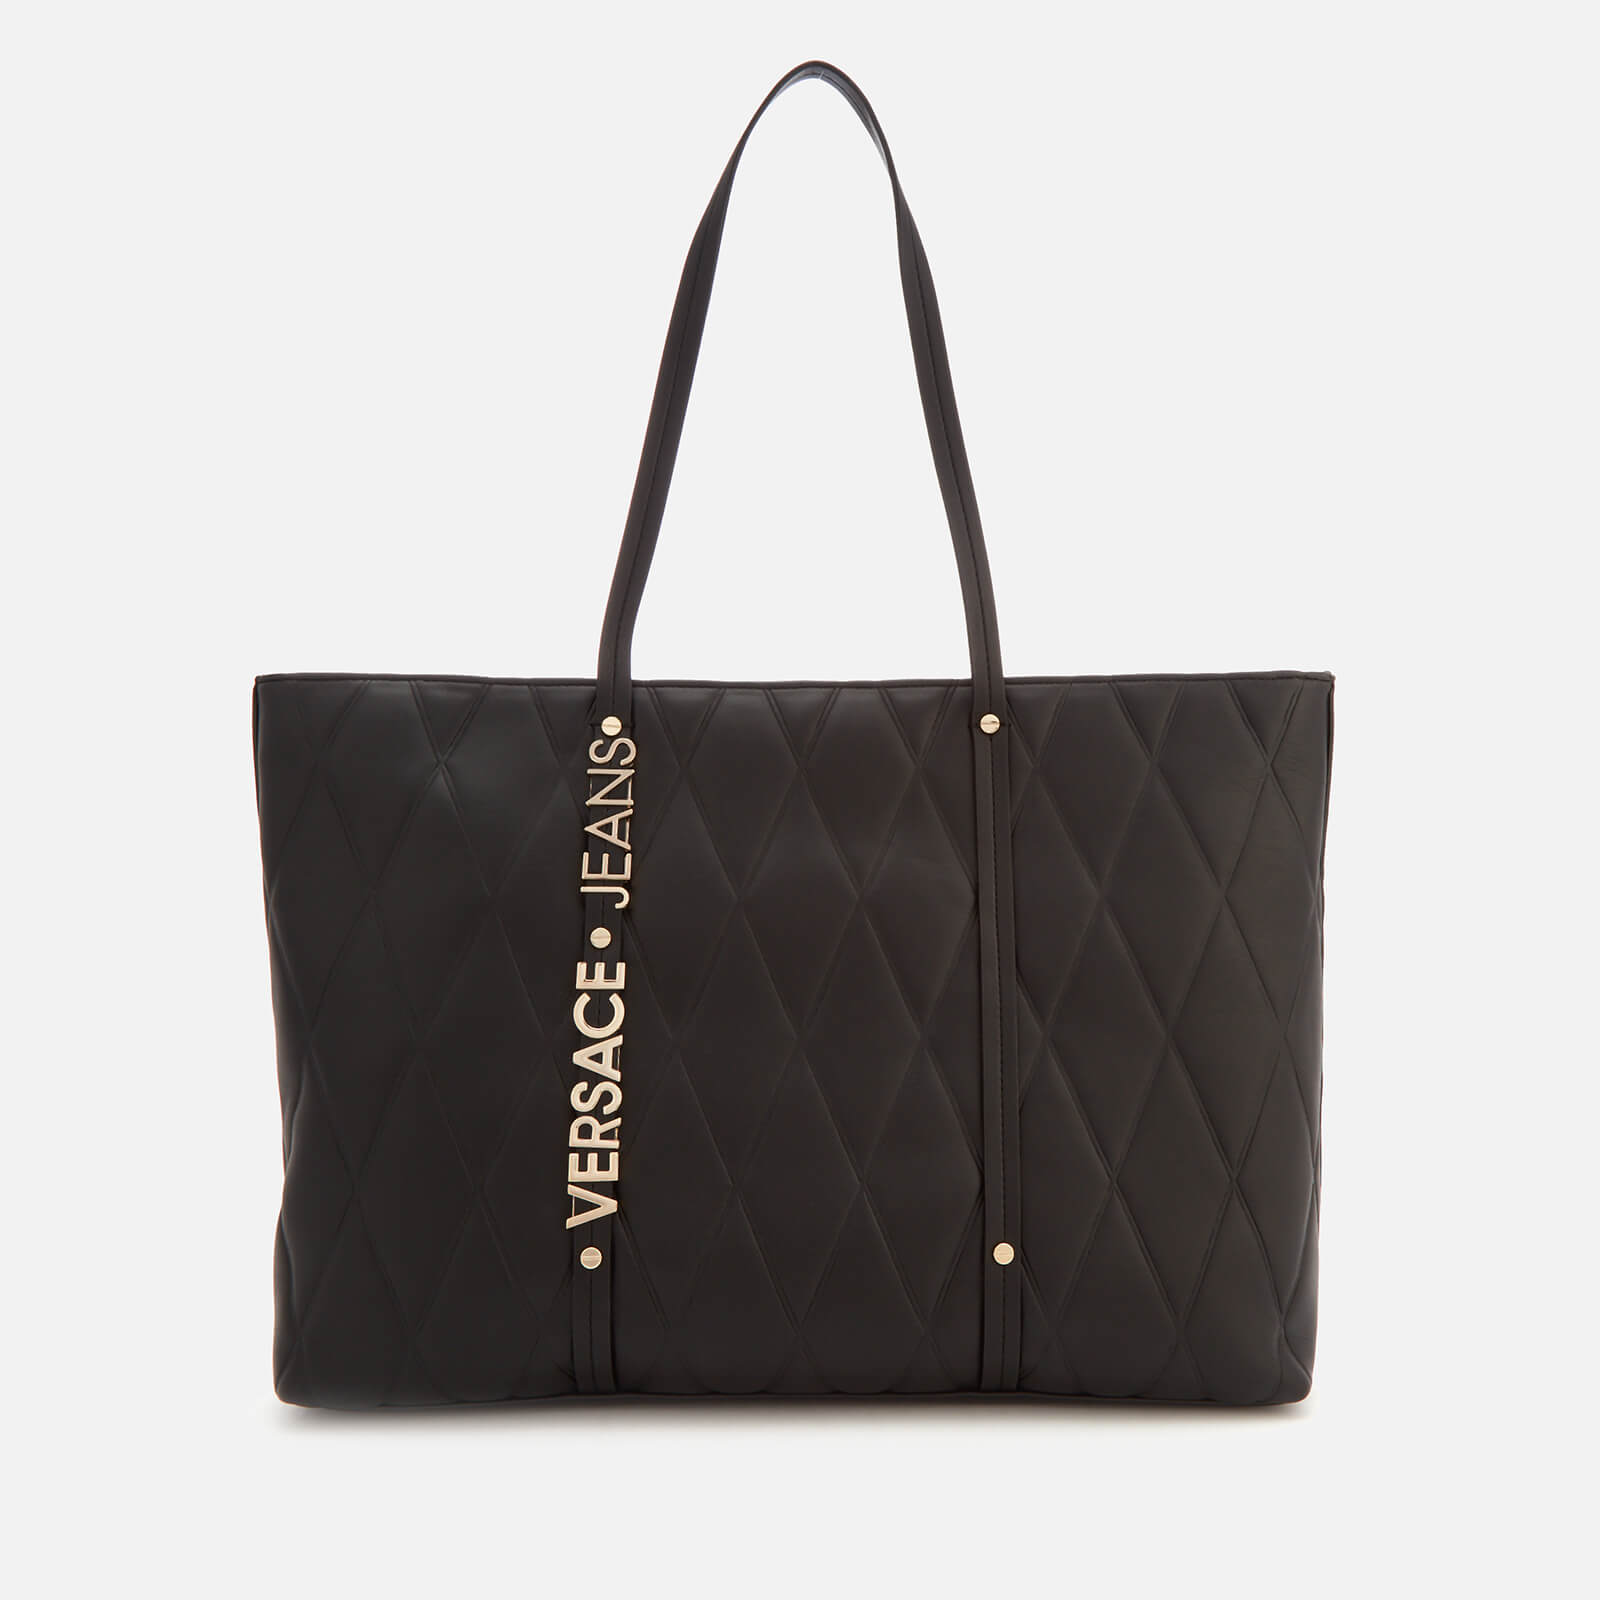 75551fc3bc1 Versace Jeans Women s Quilted Logo Tote Bag - Black Clothing ...